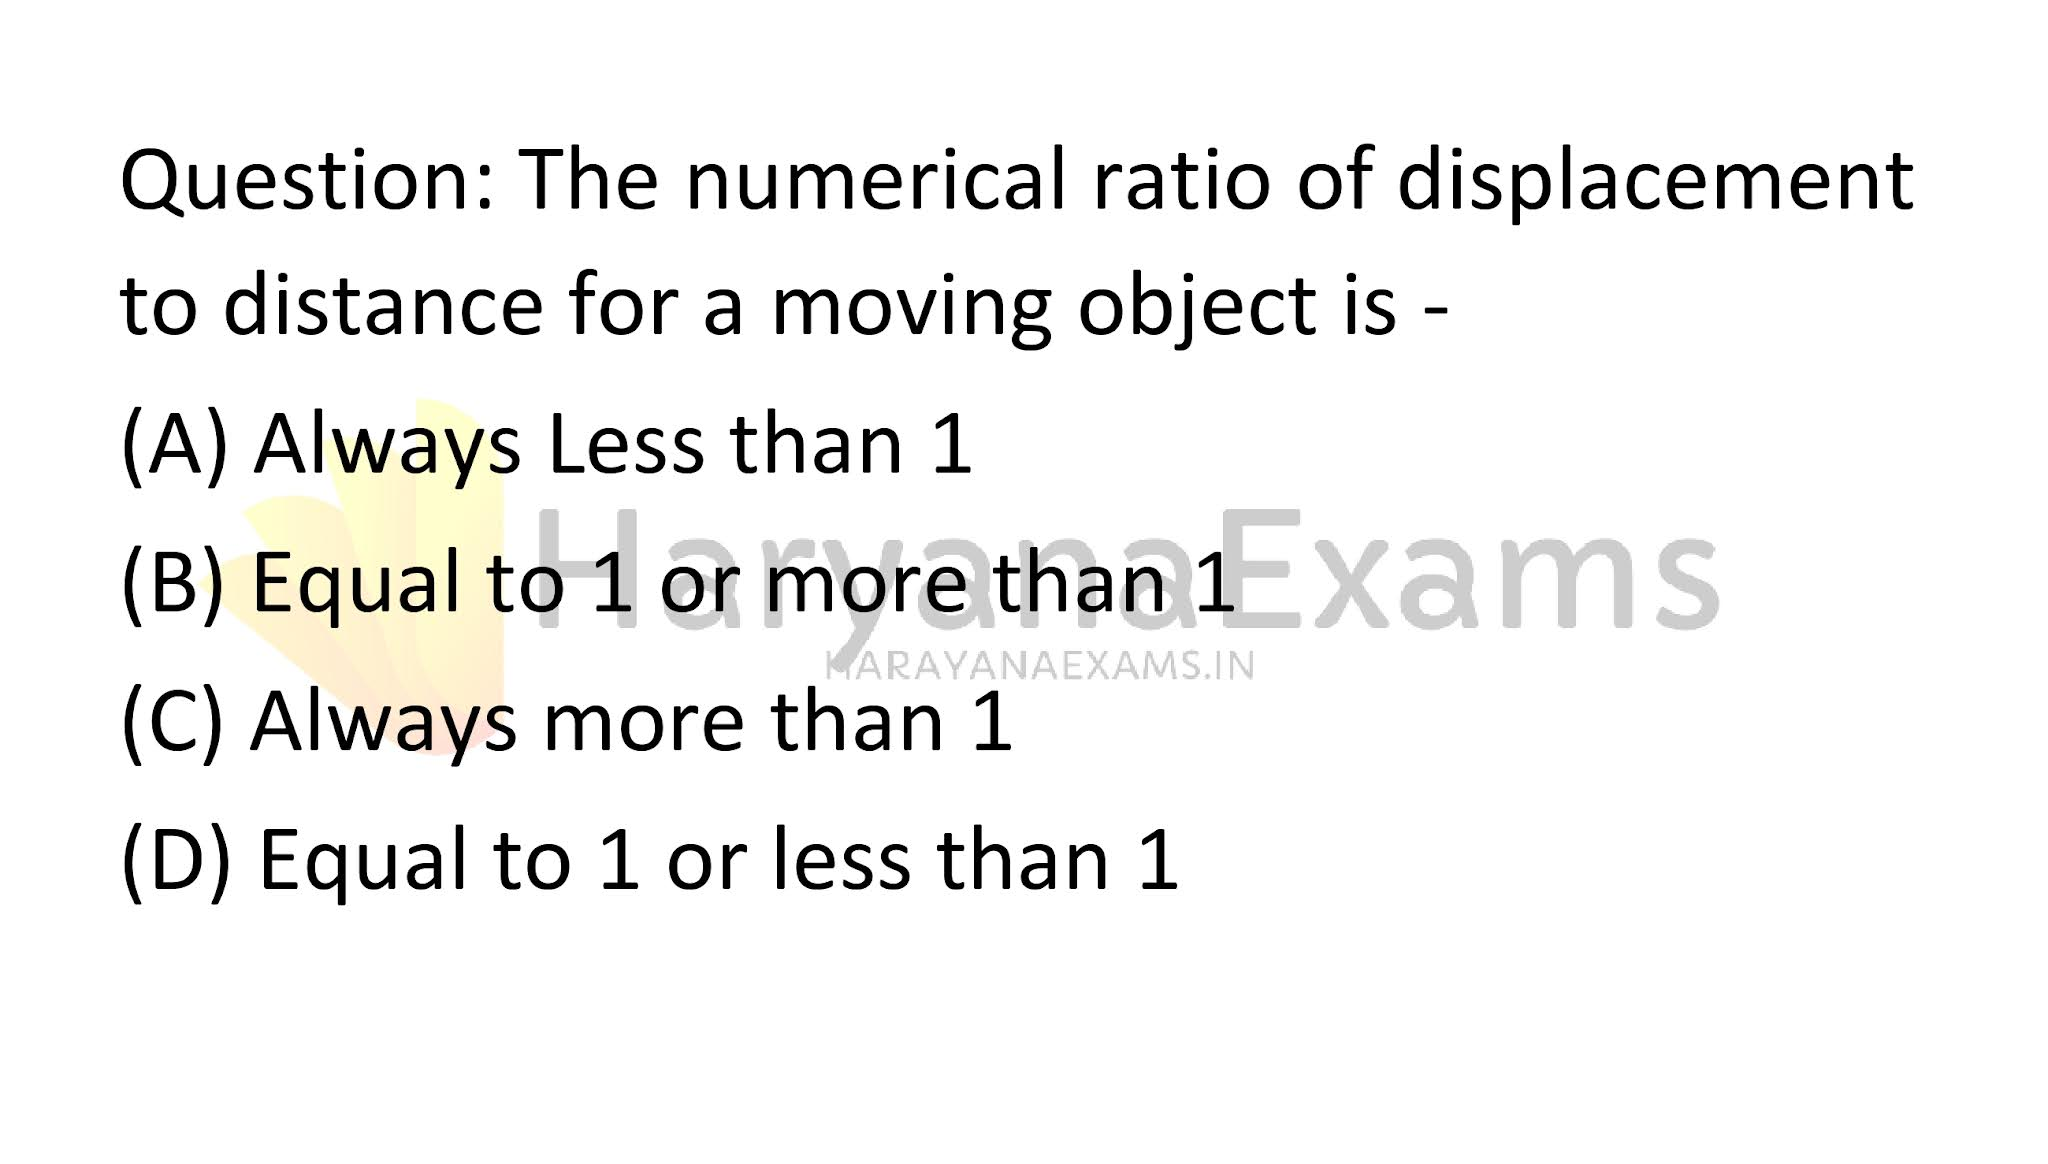 The numerical ratio of displacement to distance for a moving object is -